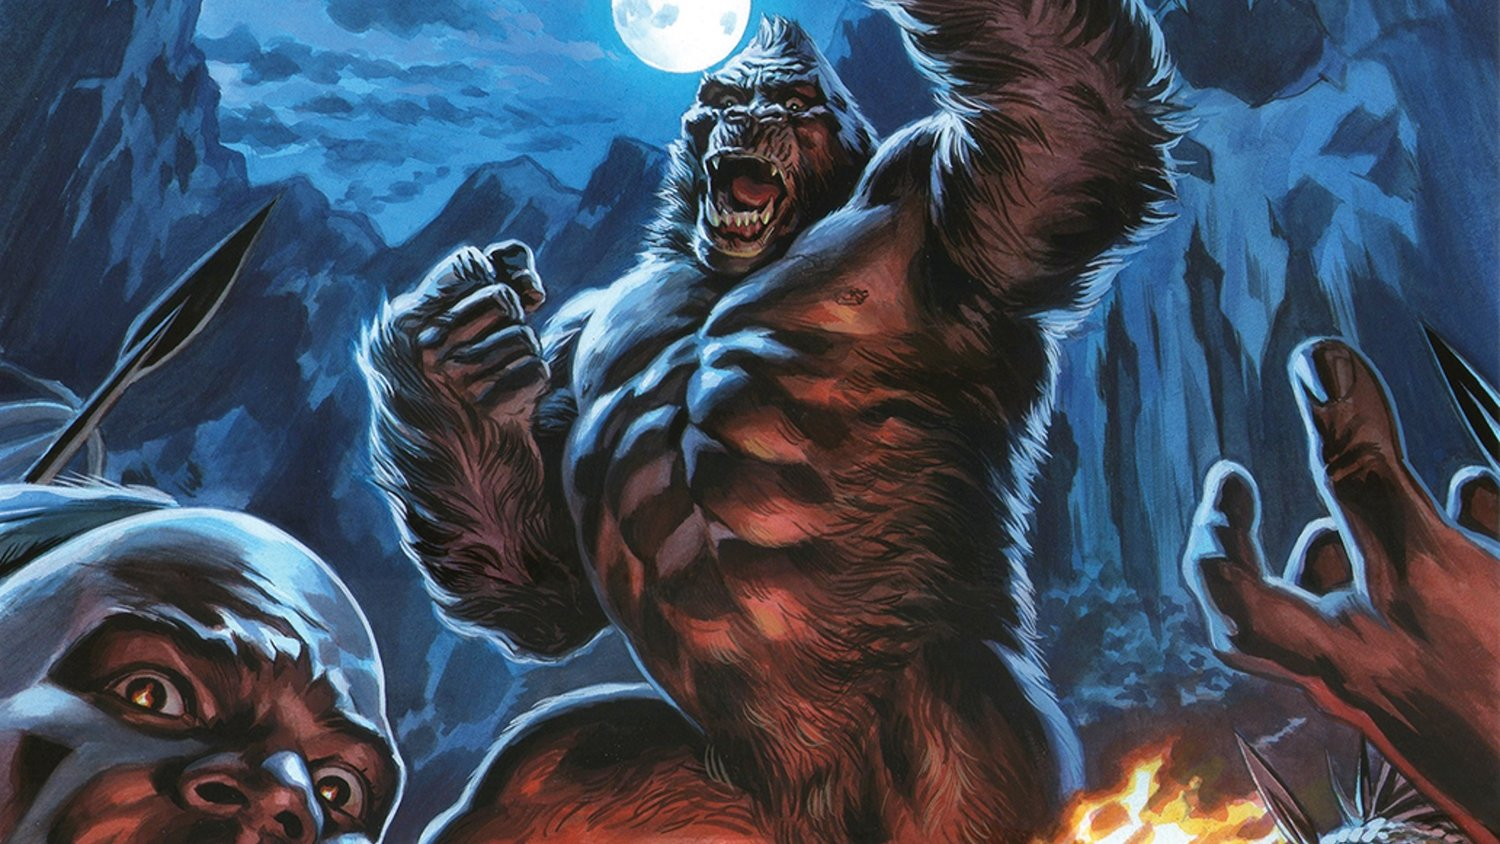 There's a KING KONG SKULL ISLAND TV Series in Development